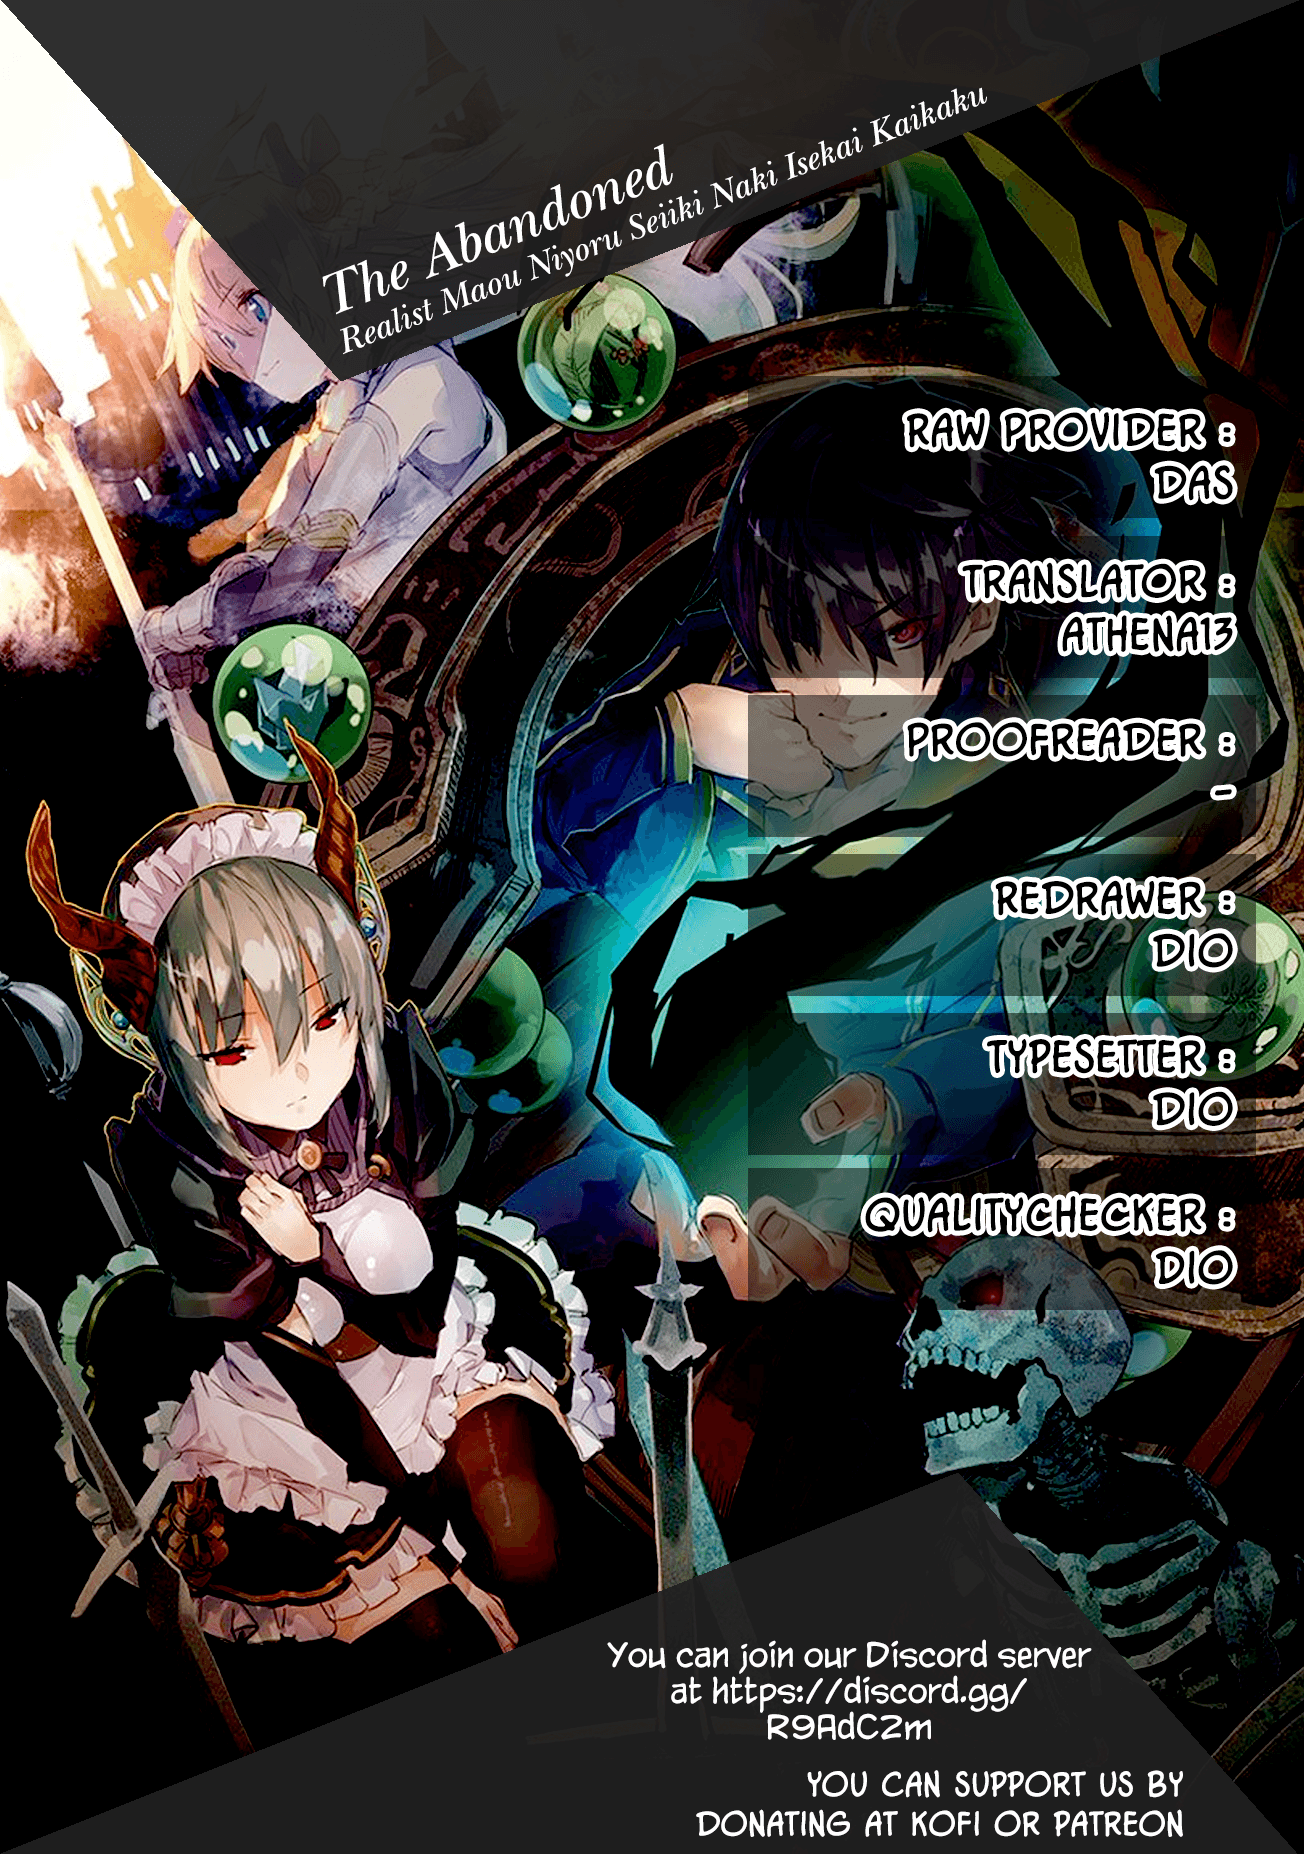 Manga The Legendary Rebuilding of a World by a Realist Demon King - Chapter 11 Page 1